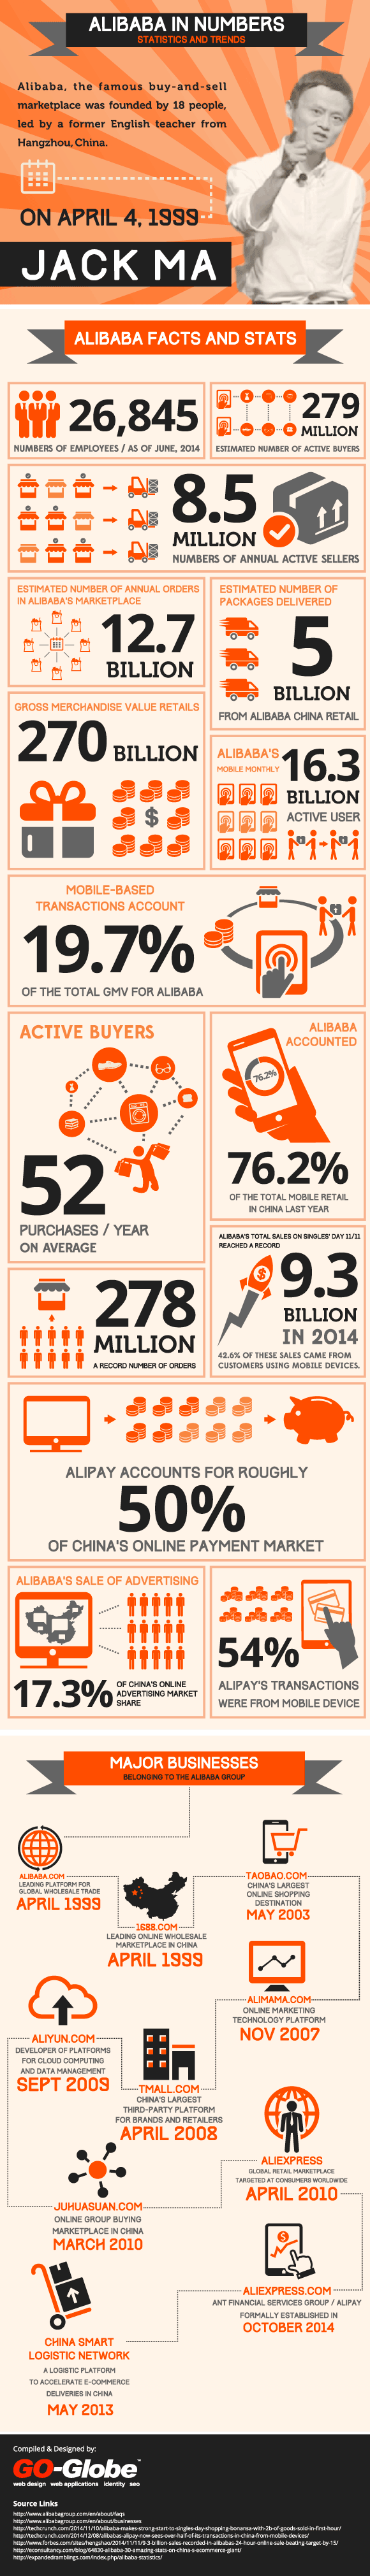 alibaba in numbers